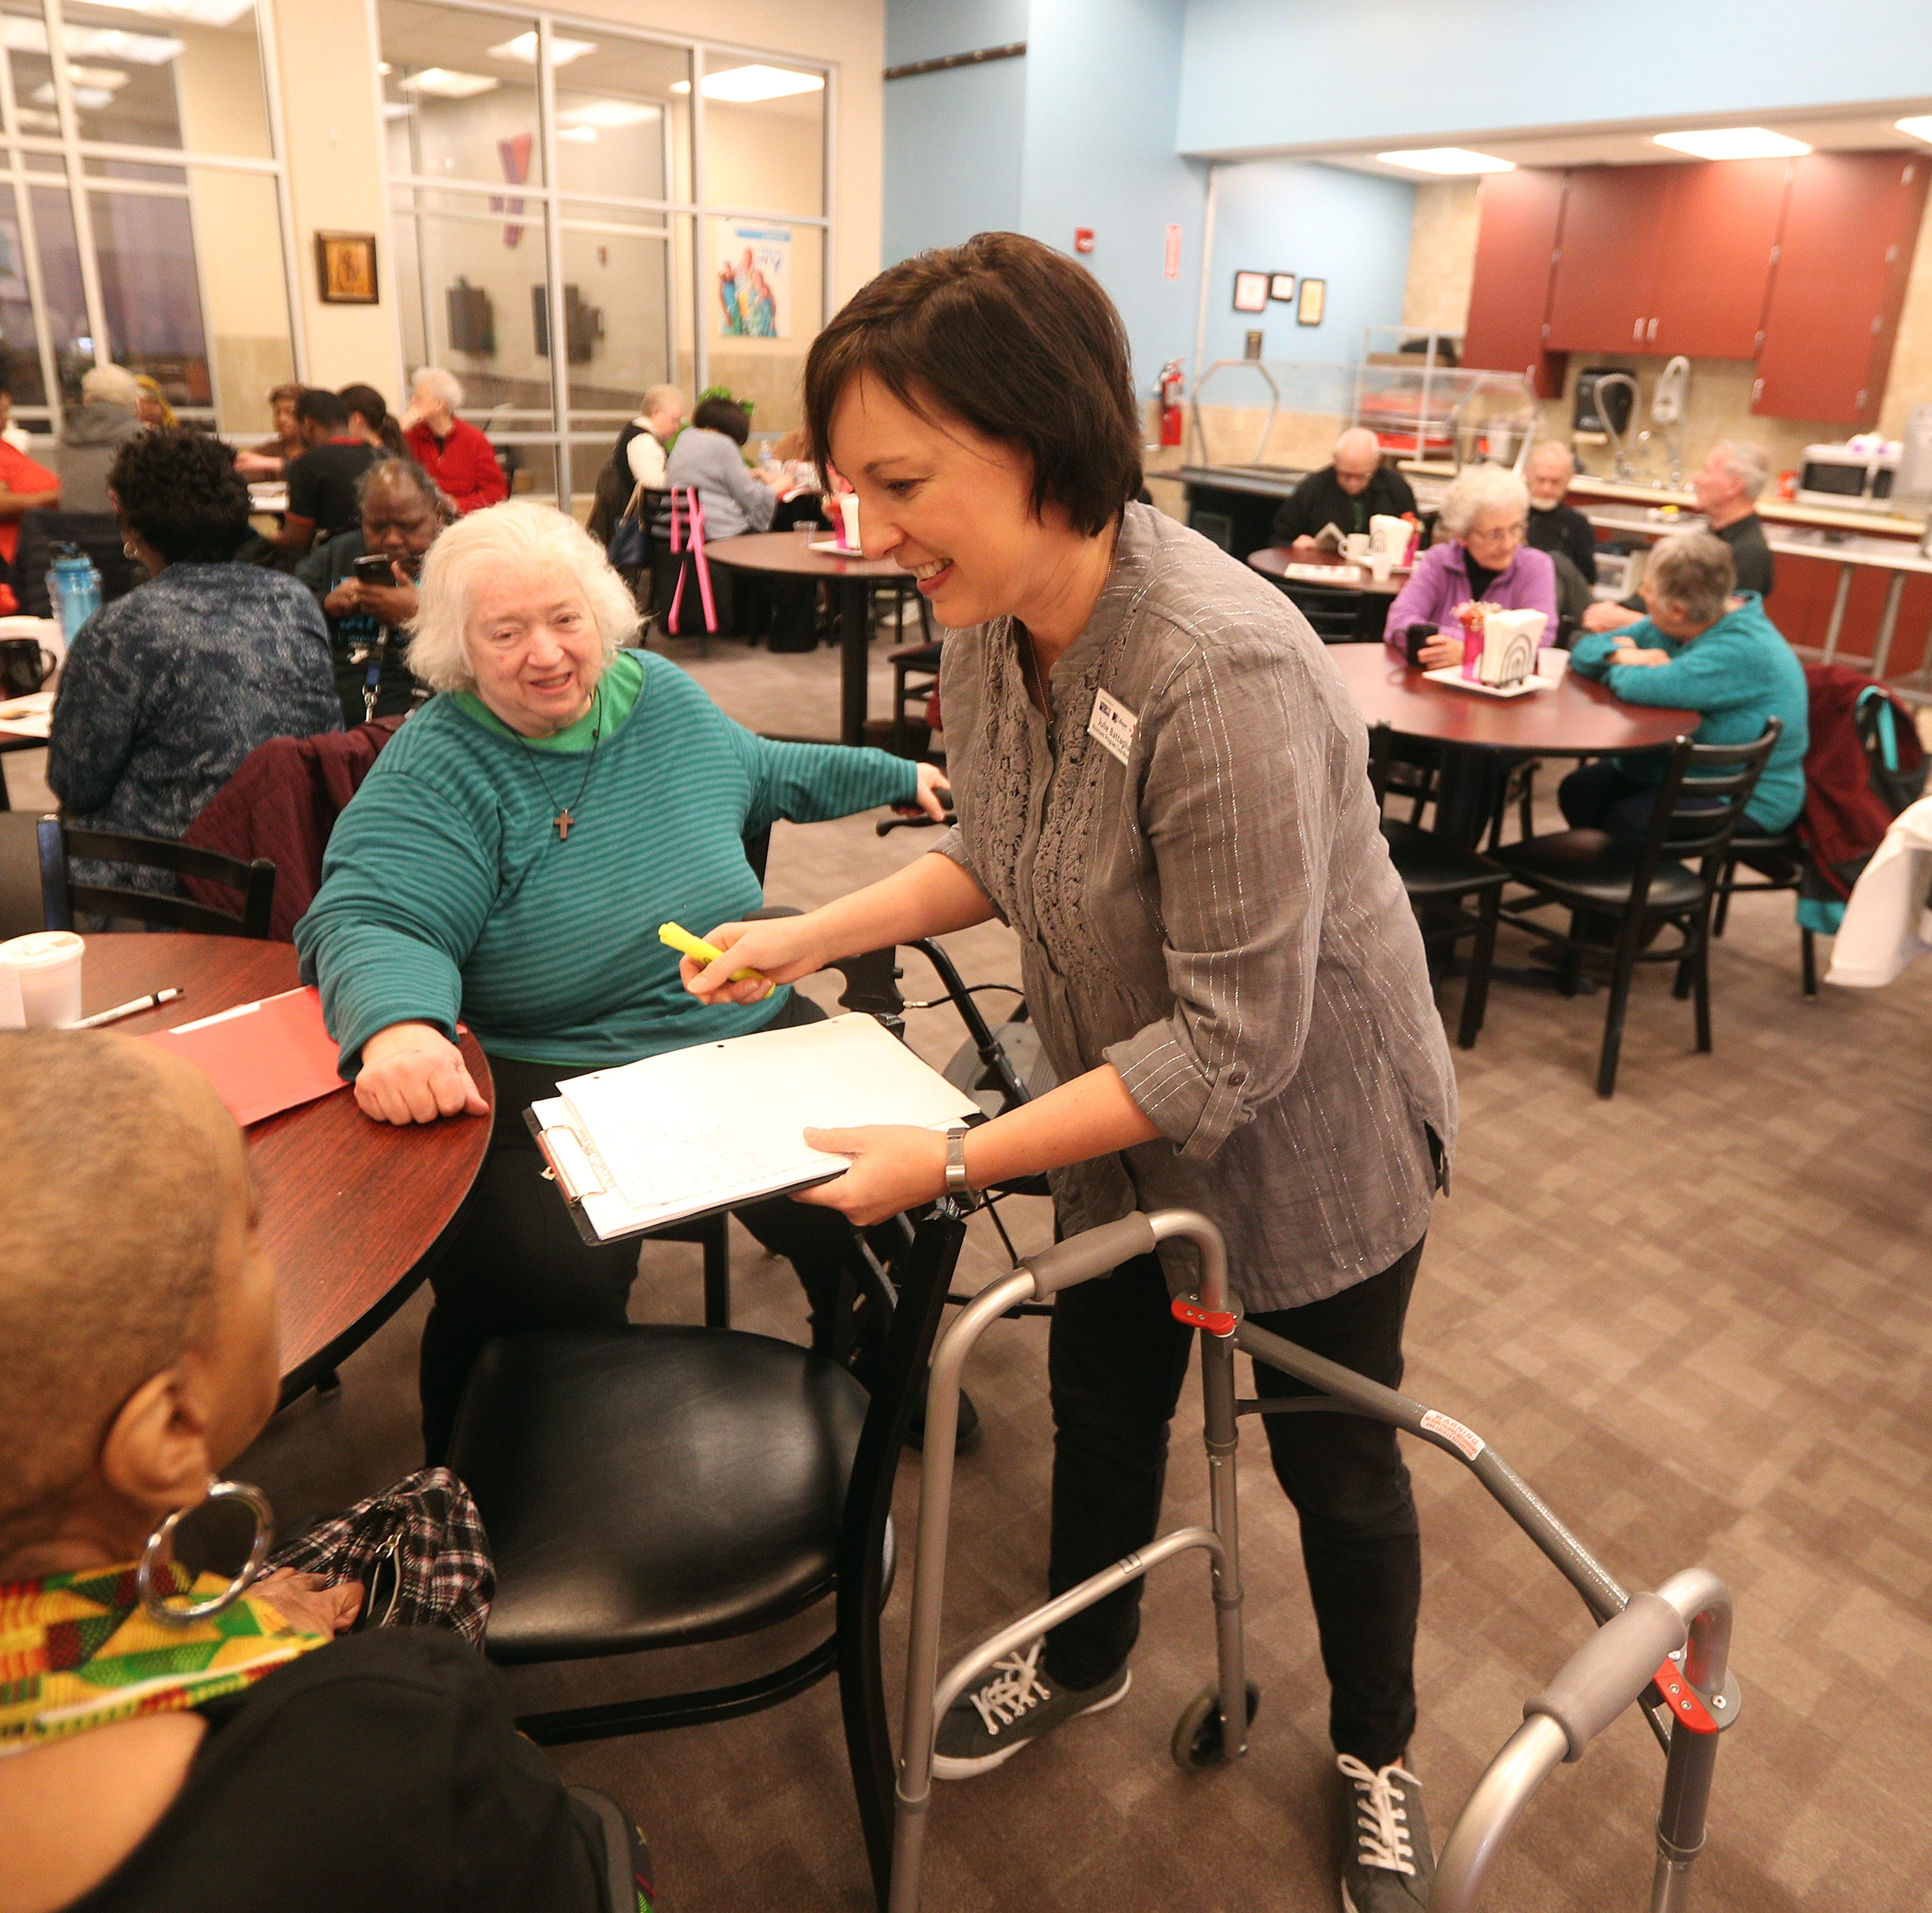 Midsize workplace winner: Lifespan inspires employees by caring about older adults